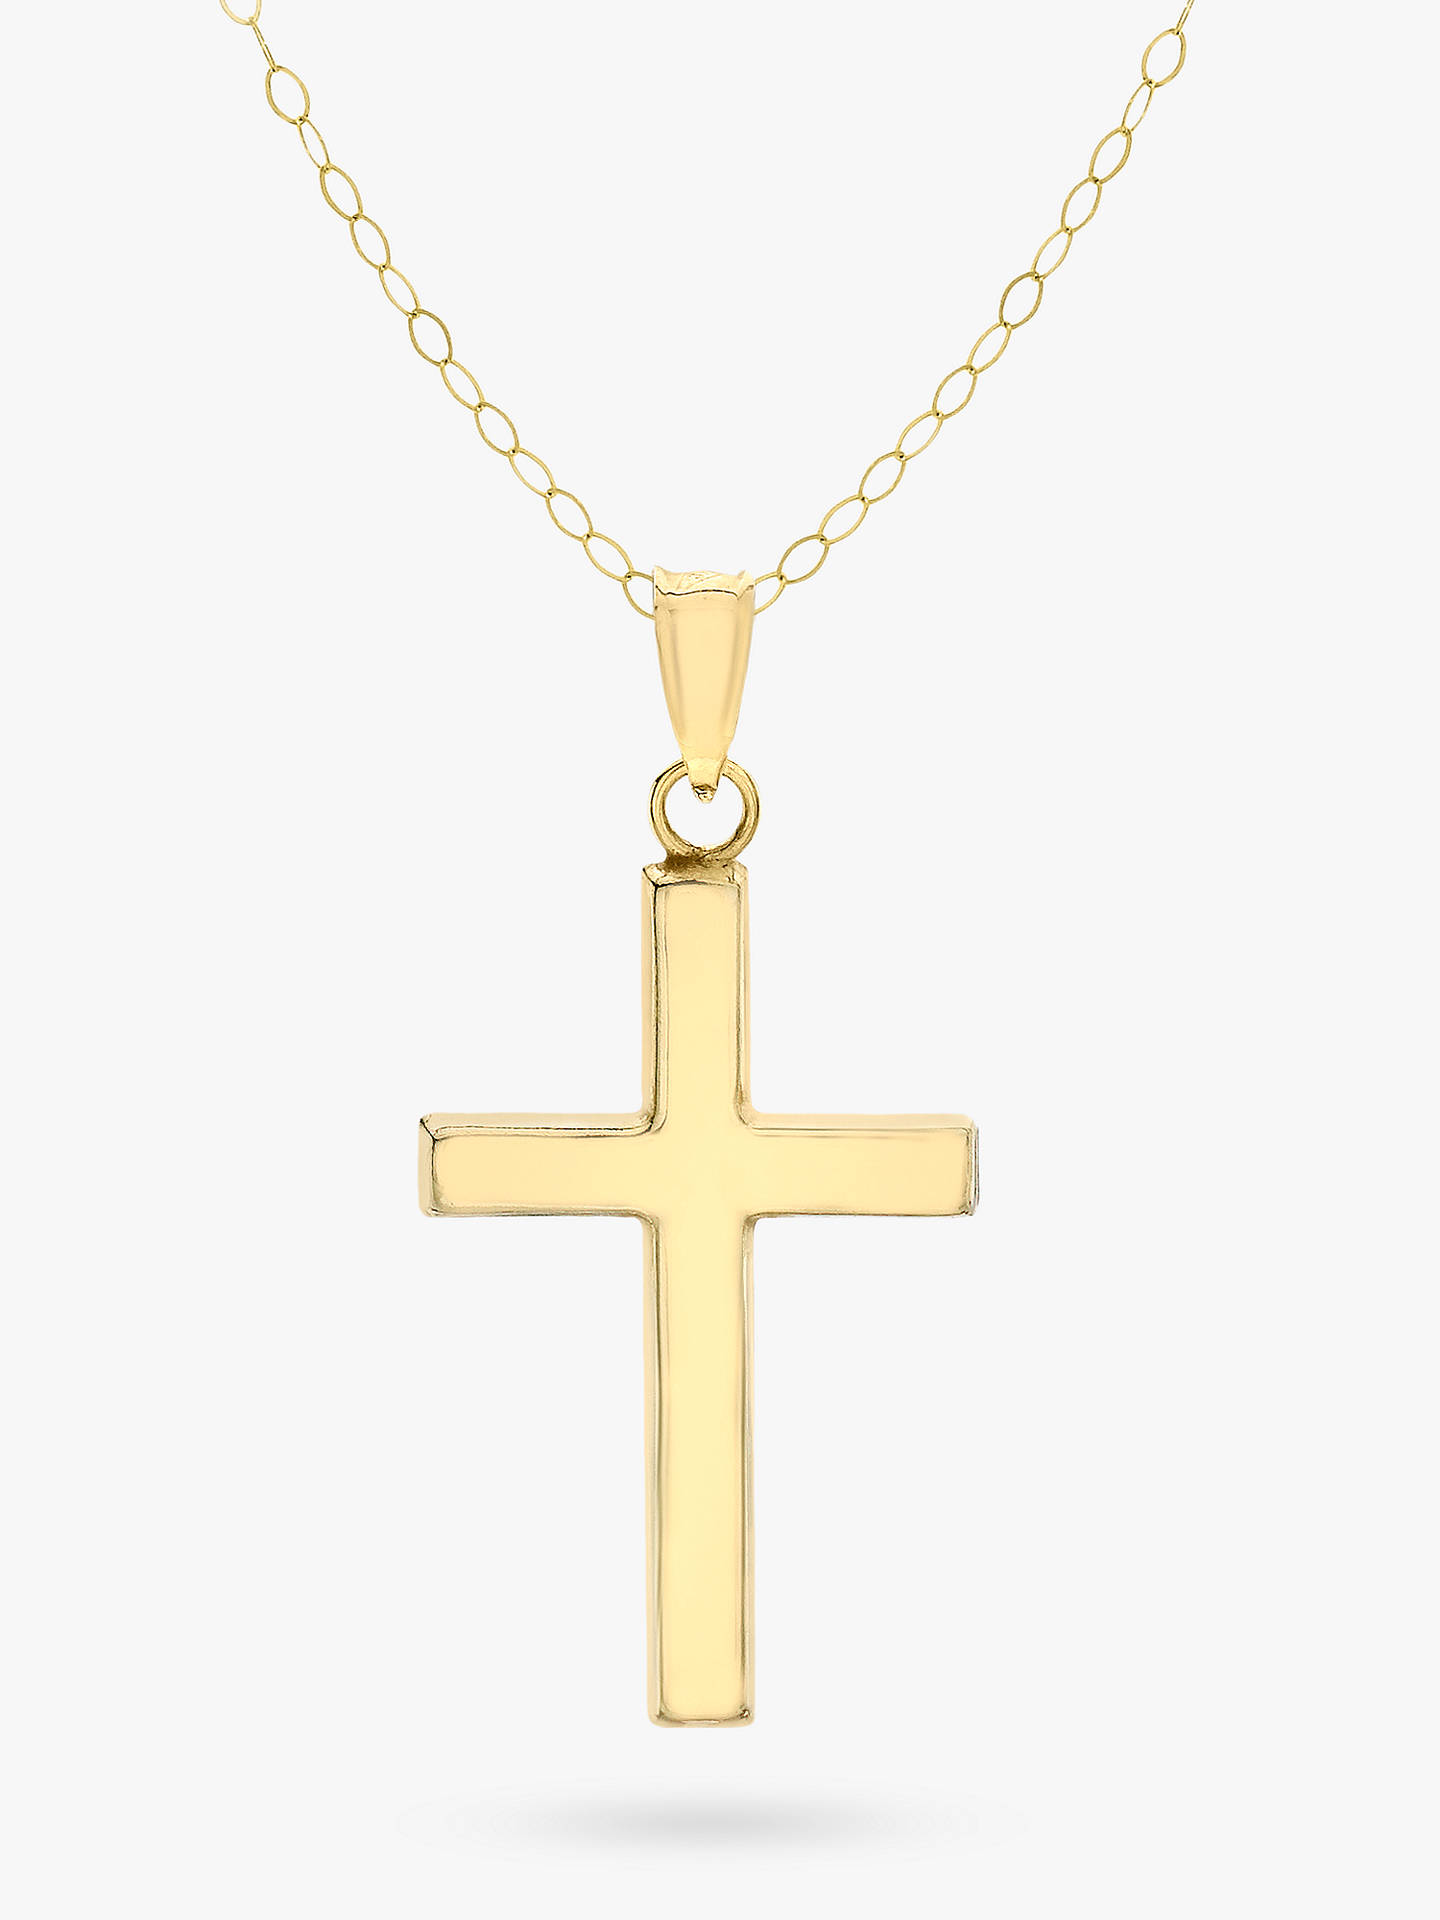 63613bfd424e24 Buy IBB 9ct Yellow Gold Cross Pendant Necklace, Gold Online at  johnlewis.com ...